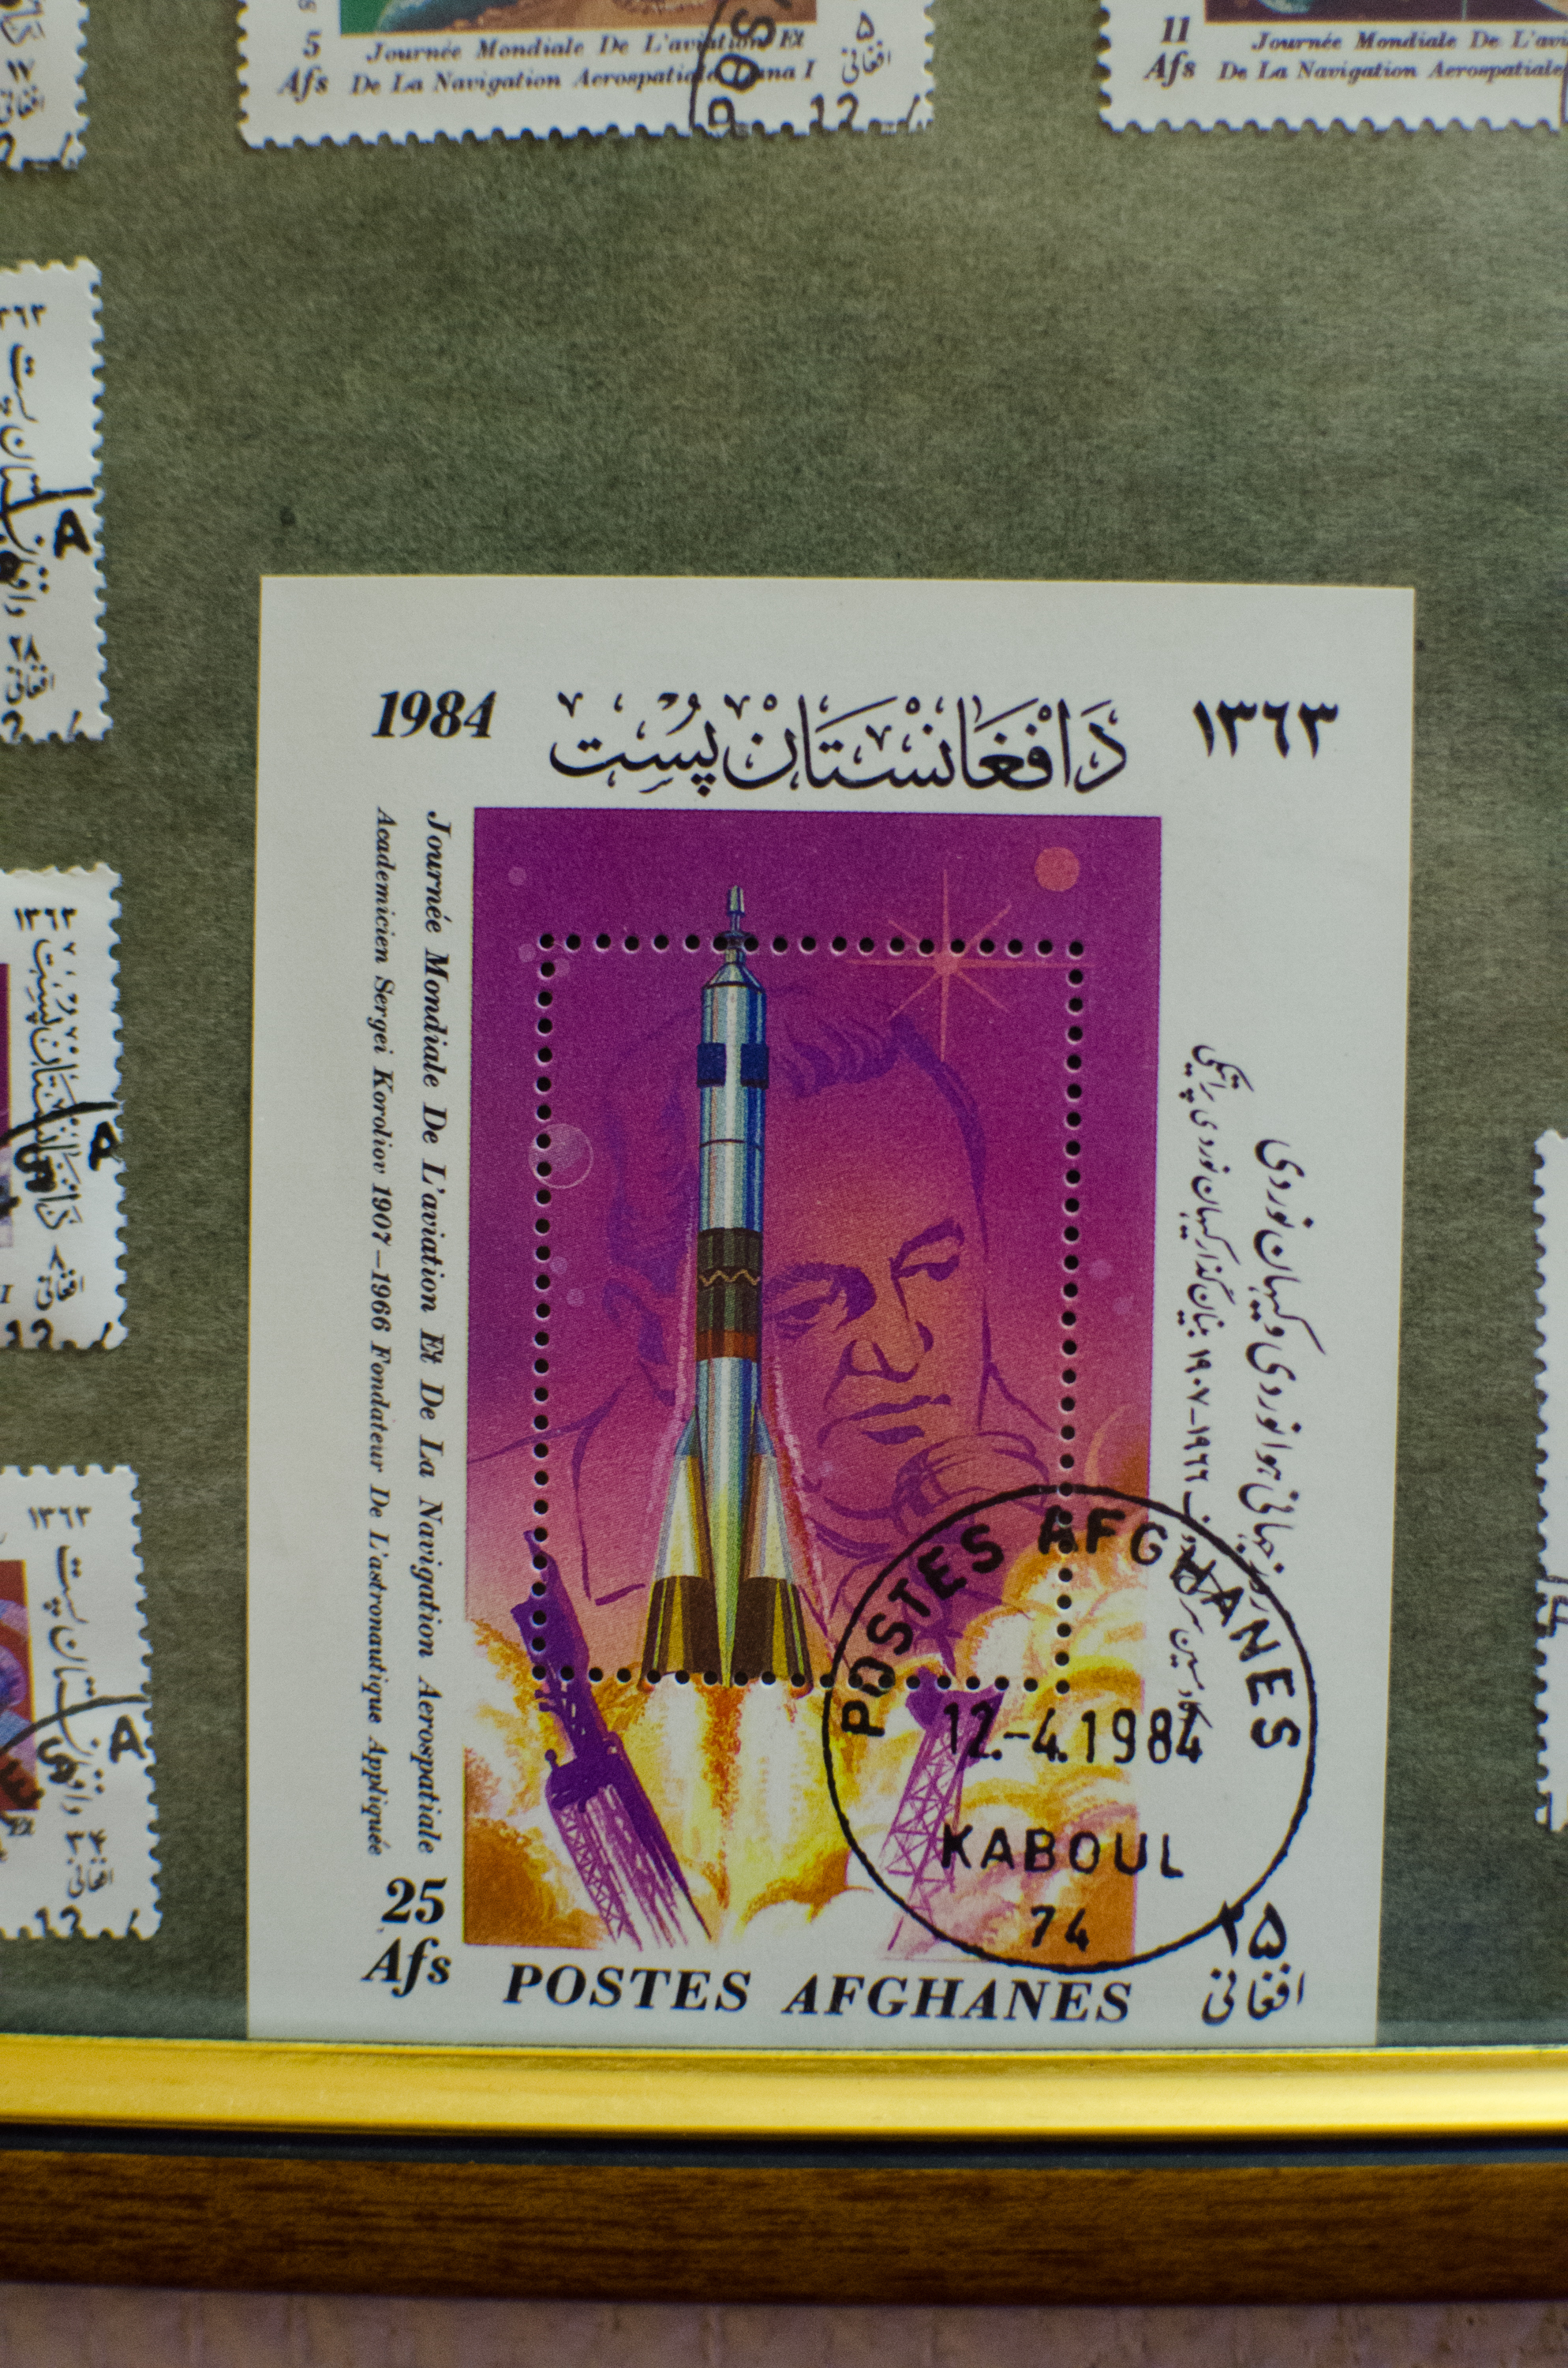 Stamps produced just before the Soviet withdrawl from Afghanistan, celebrating the launch into space of an Afghan Cosmonaut.